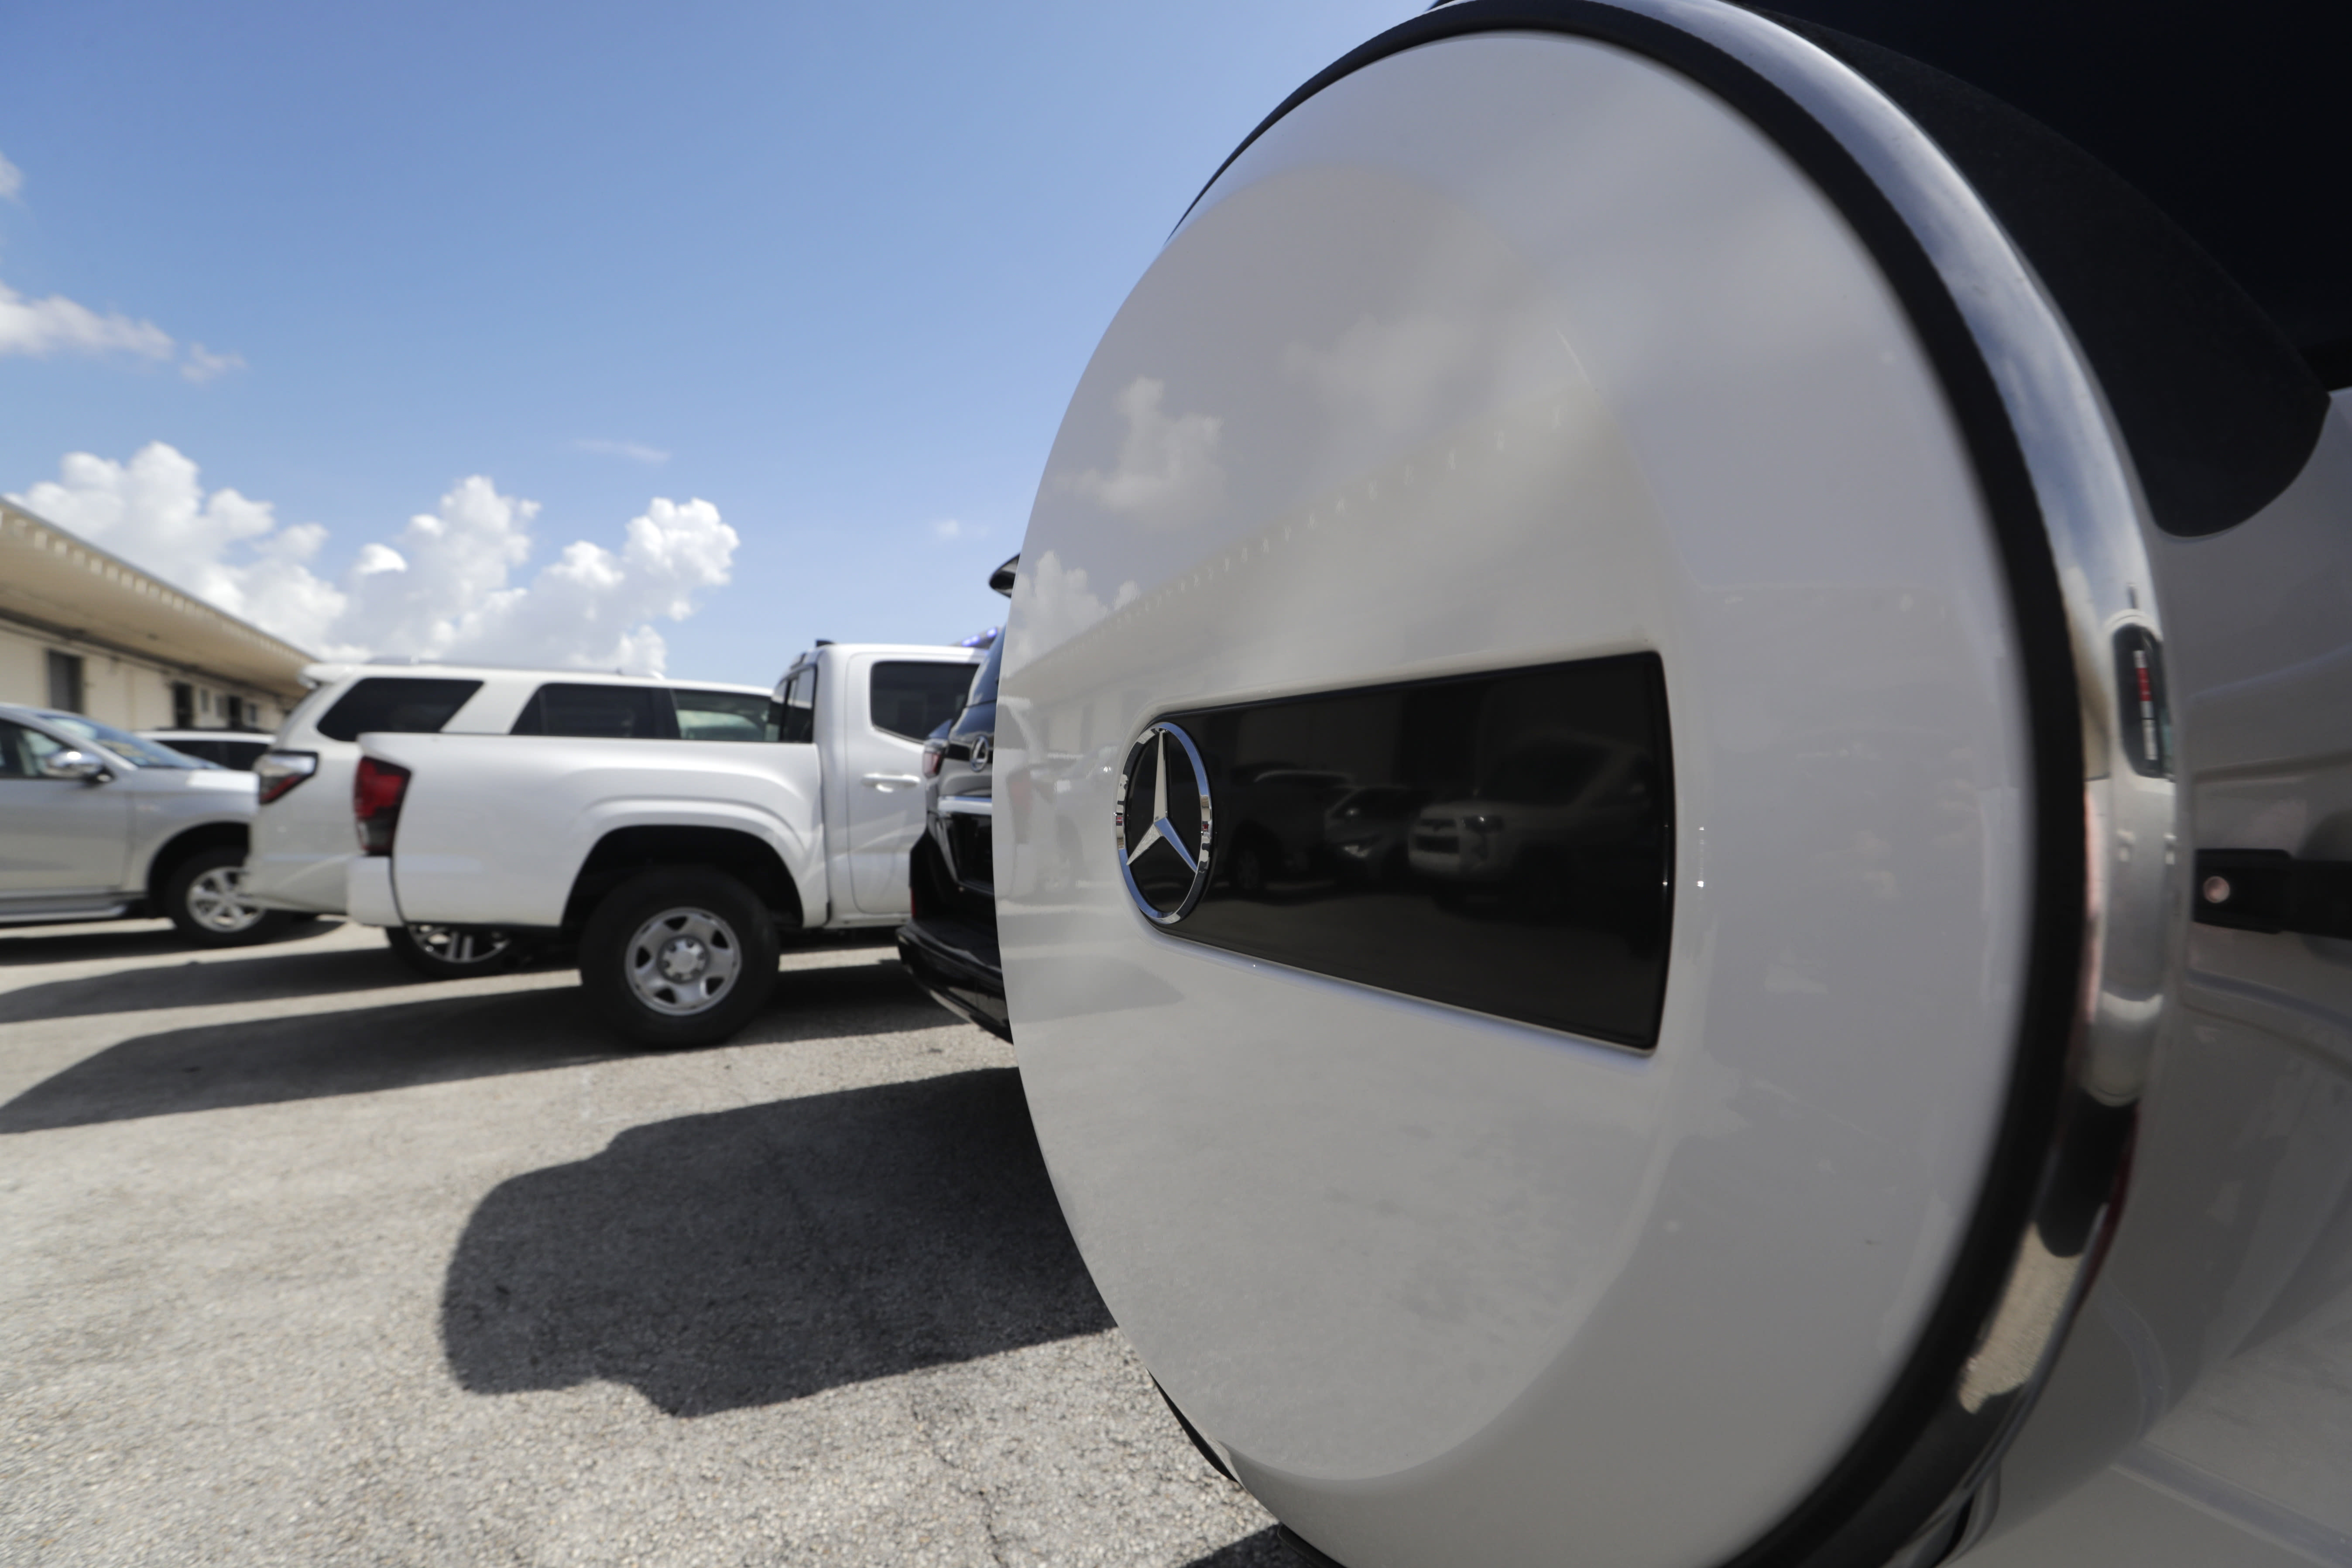 A Mercedes-Benz SUV sits among vehicles worth an estimated $3.2 million, at Port Everglades after they were seized by Homeland Security Investigations, Wednesday, July 8, 2020, in Fort Lauderdale, Fla. The vehicles were to be smuggled to Venezuela in violation of U.S. export laws and sanctions against the socialist Venezuelan Government. (AP Photo/Lynne Sladky)